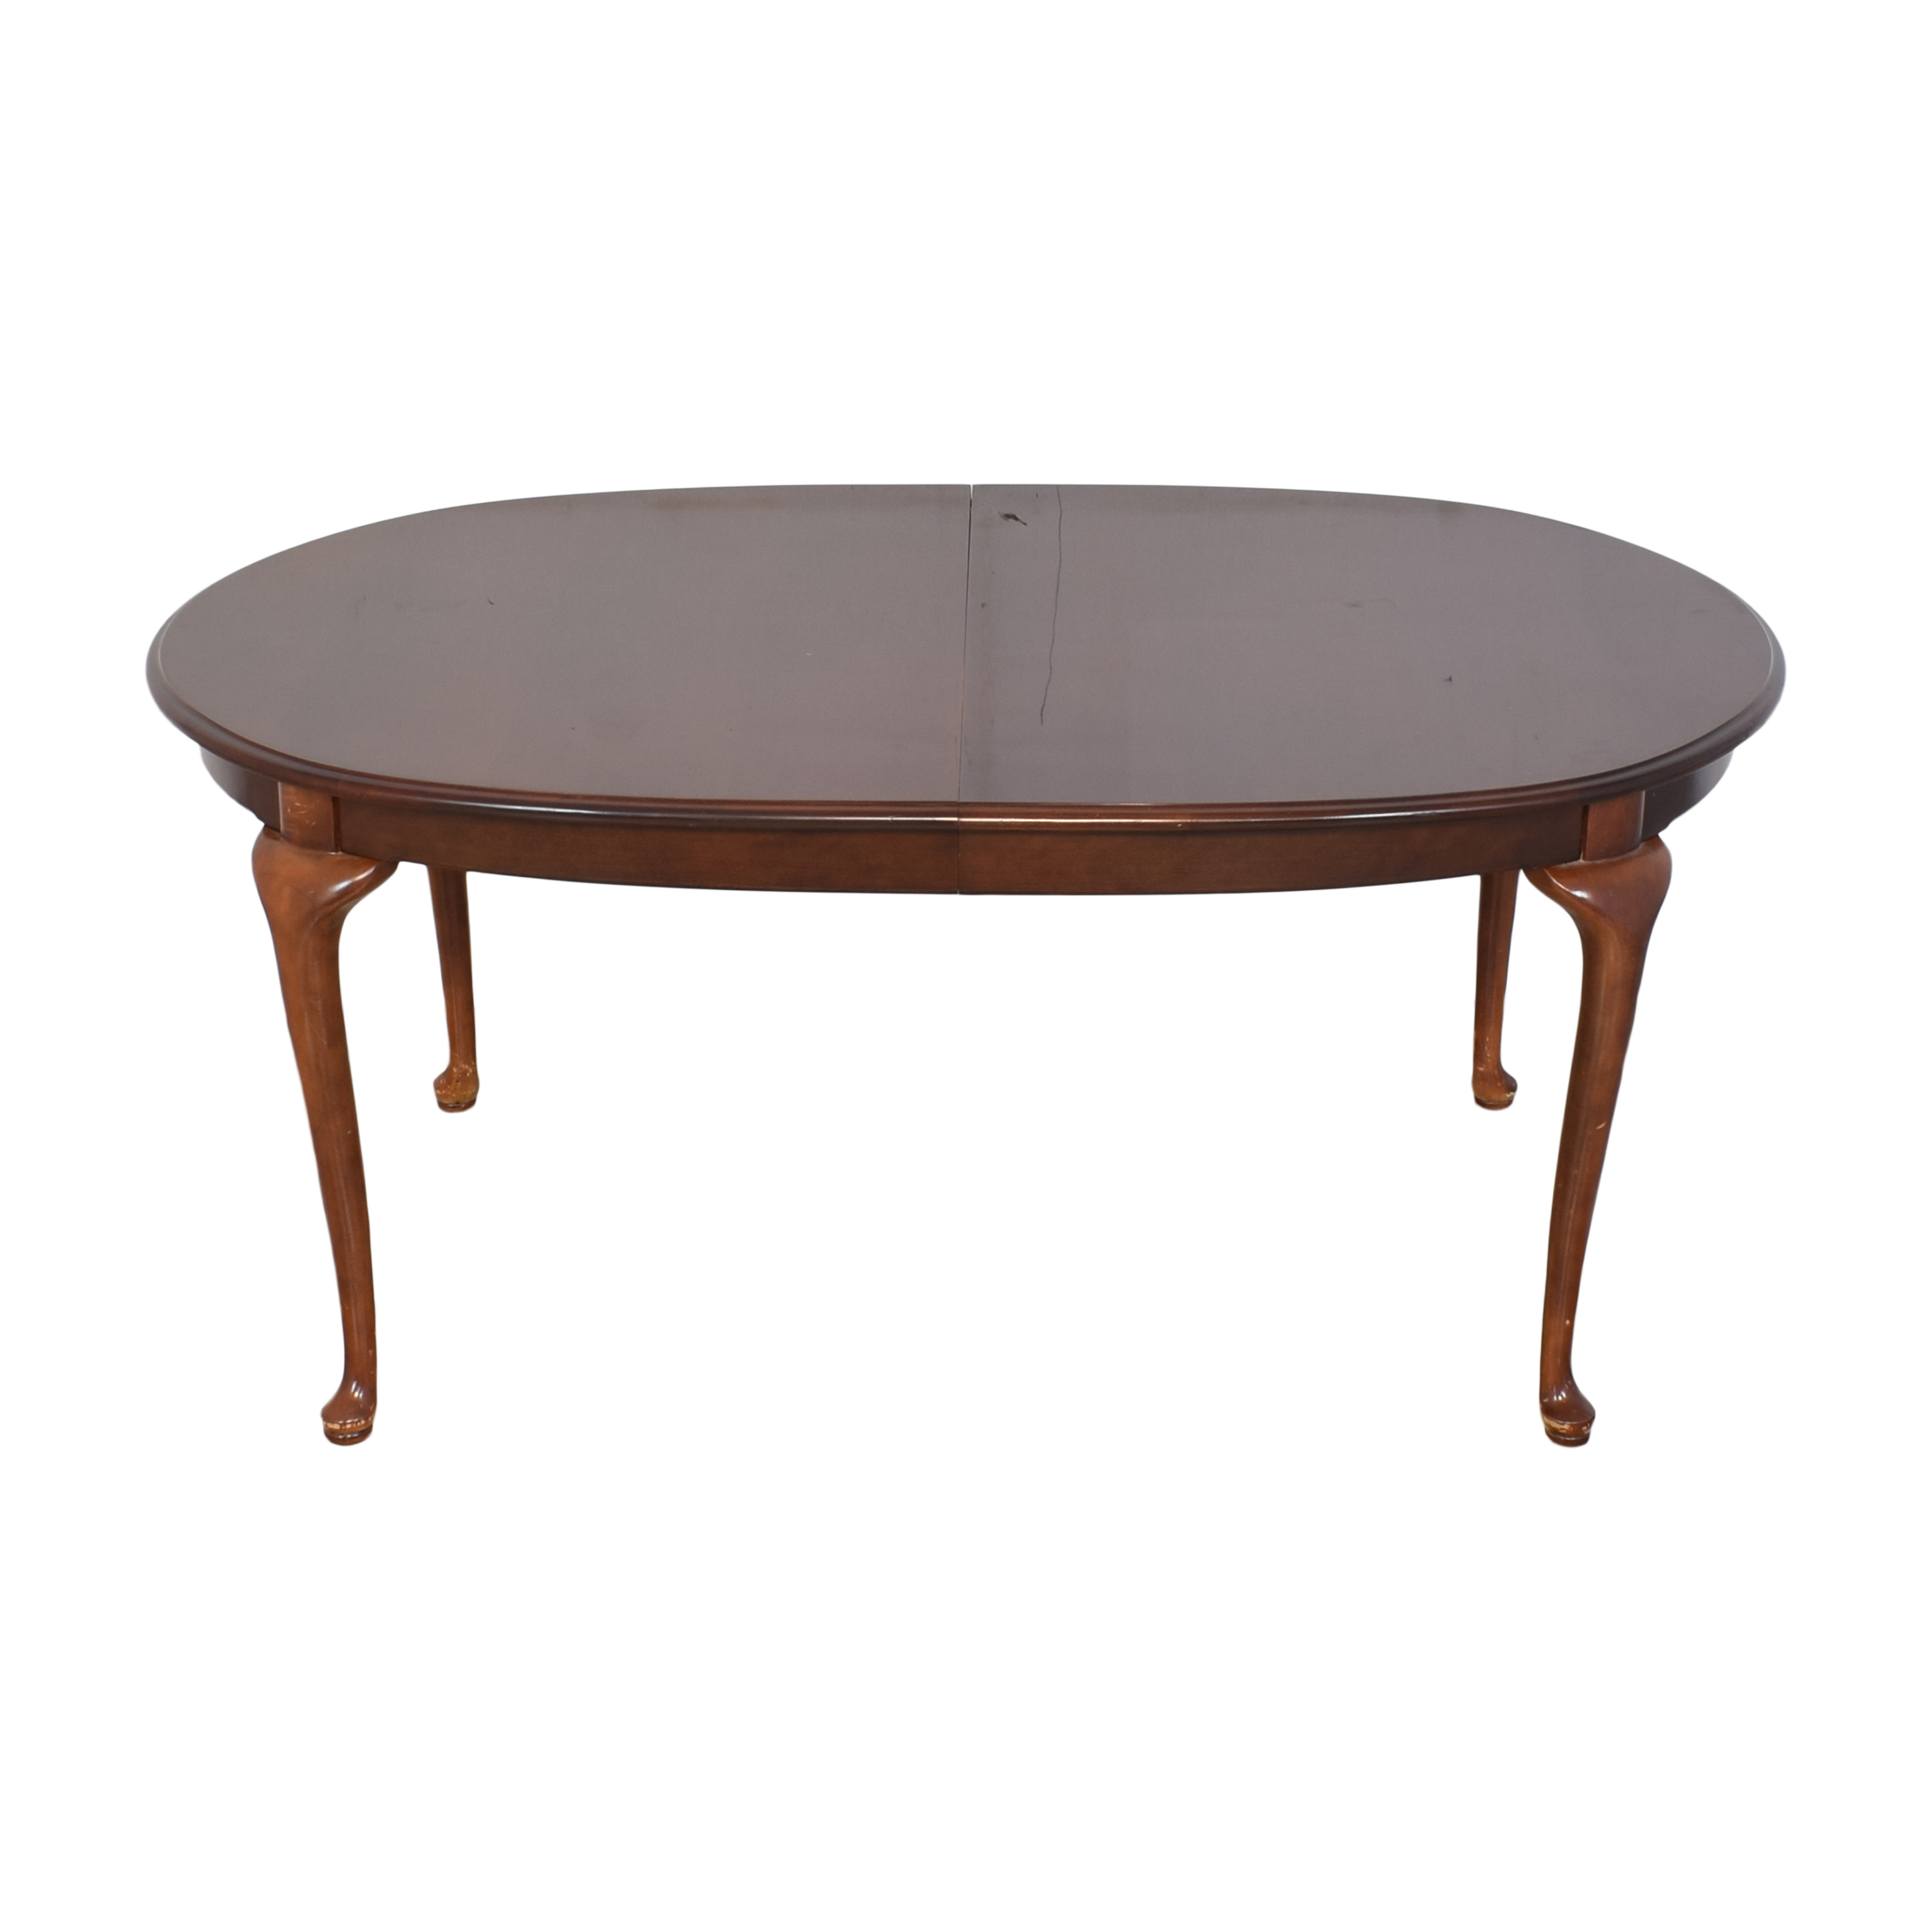 Thomasville Thomasville Extending Dining Table second hand